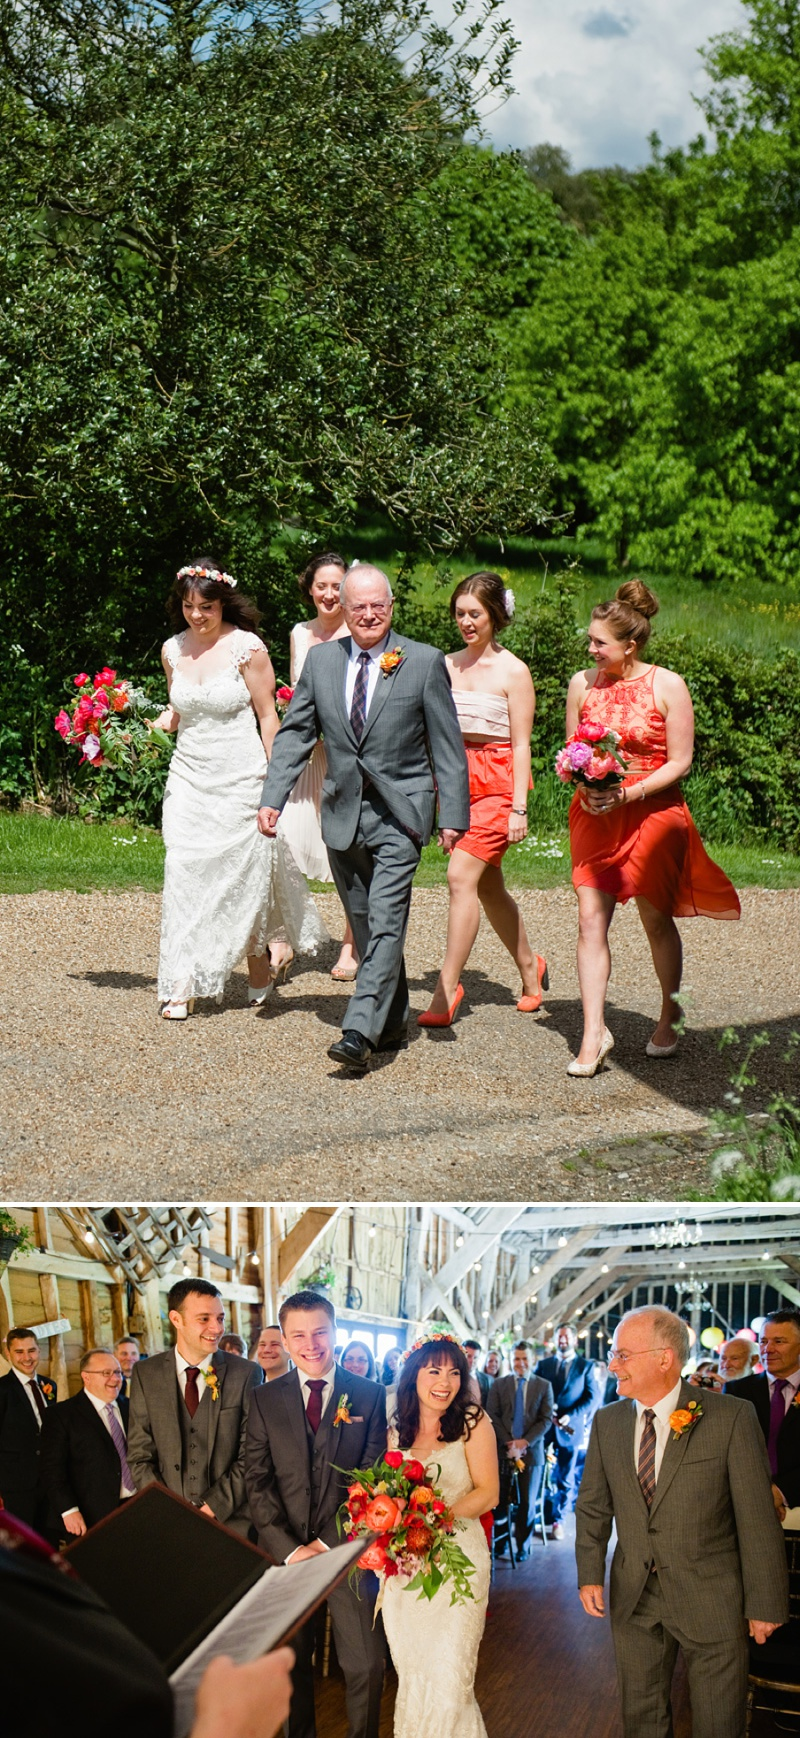 Mismatched Coral Maids Bridesmaid Dresses